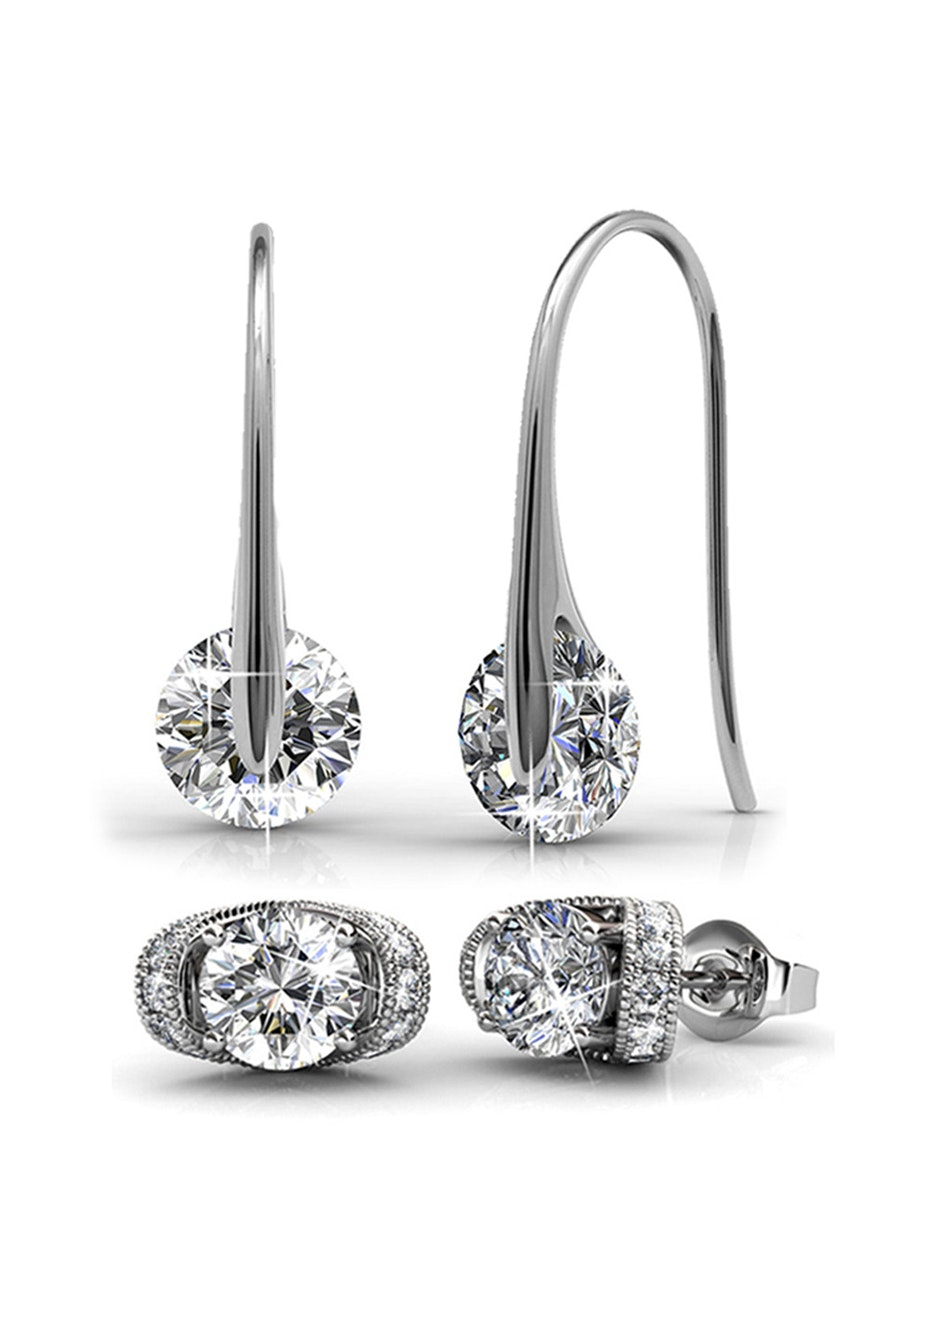 2pc Earring Set Embellished with Crystals from Swarovski